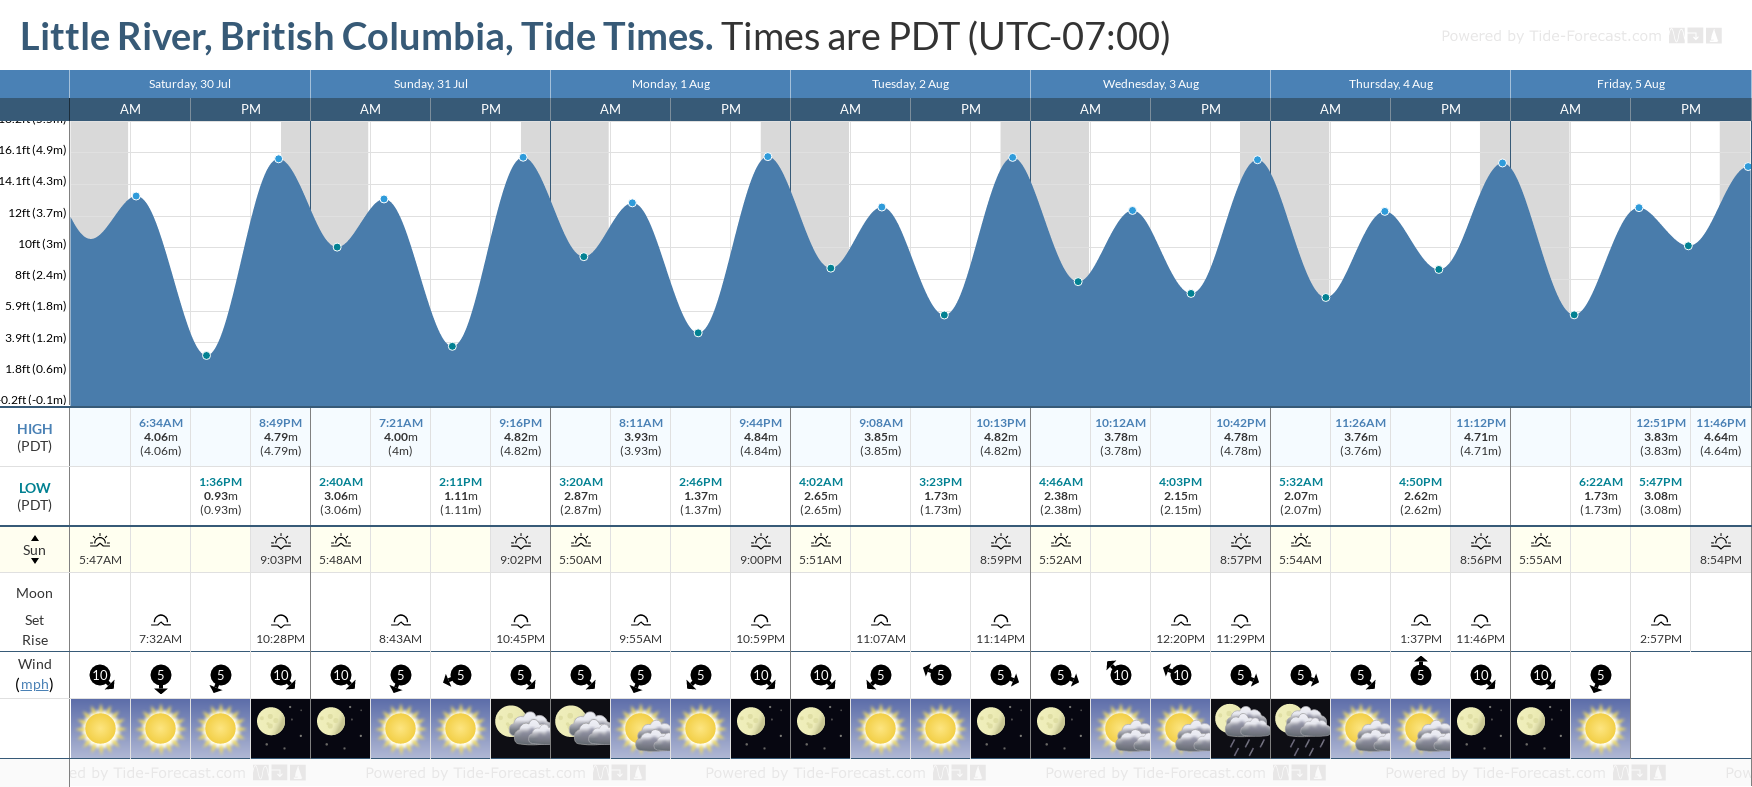 Little River, British Columbia Tide Chart including high and low tide tide times for the next 7 days